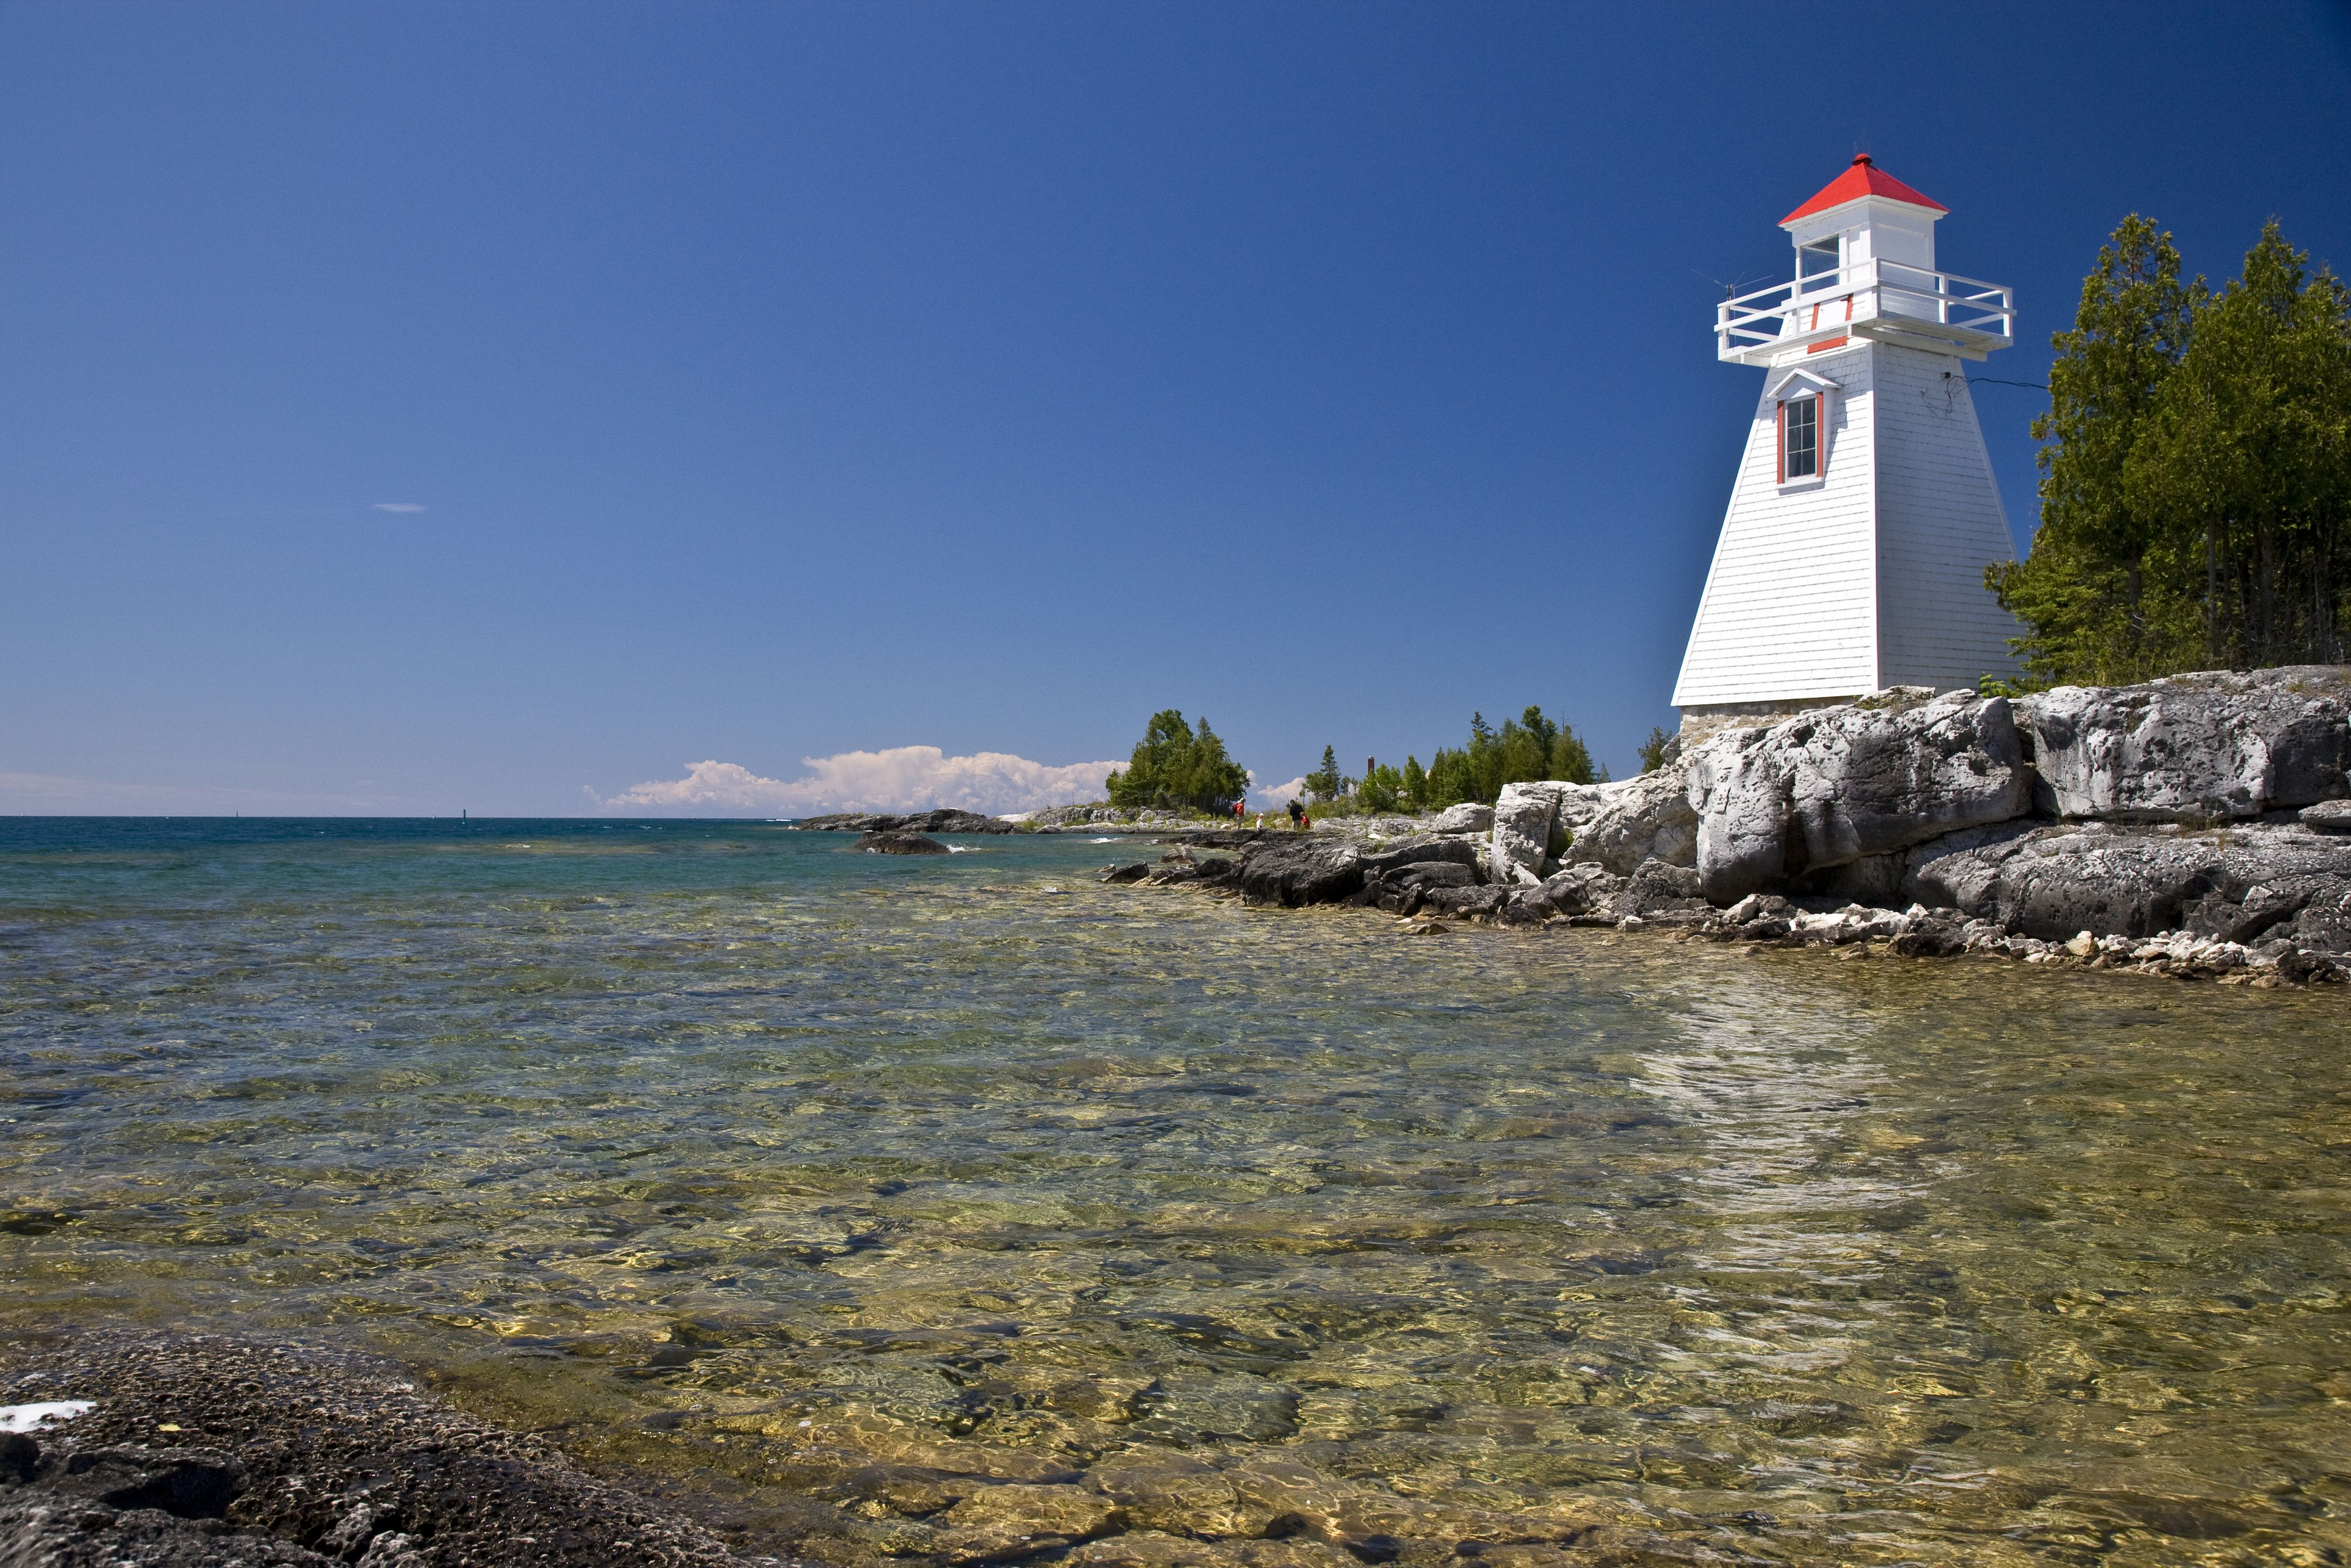 Lighthouse at South Baymouth, Manitoulin Island, Ontario, Canada.